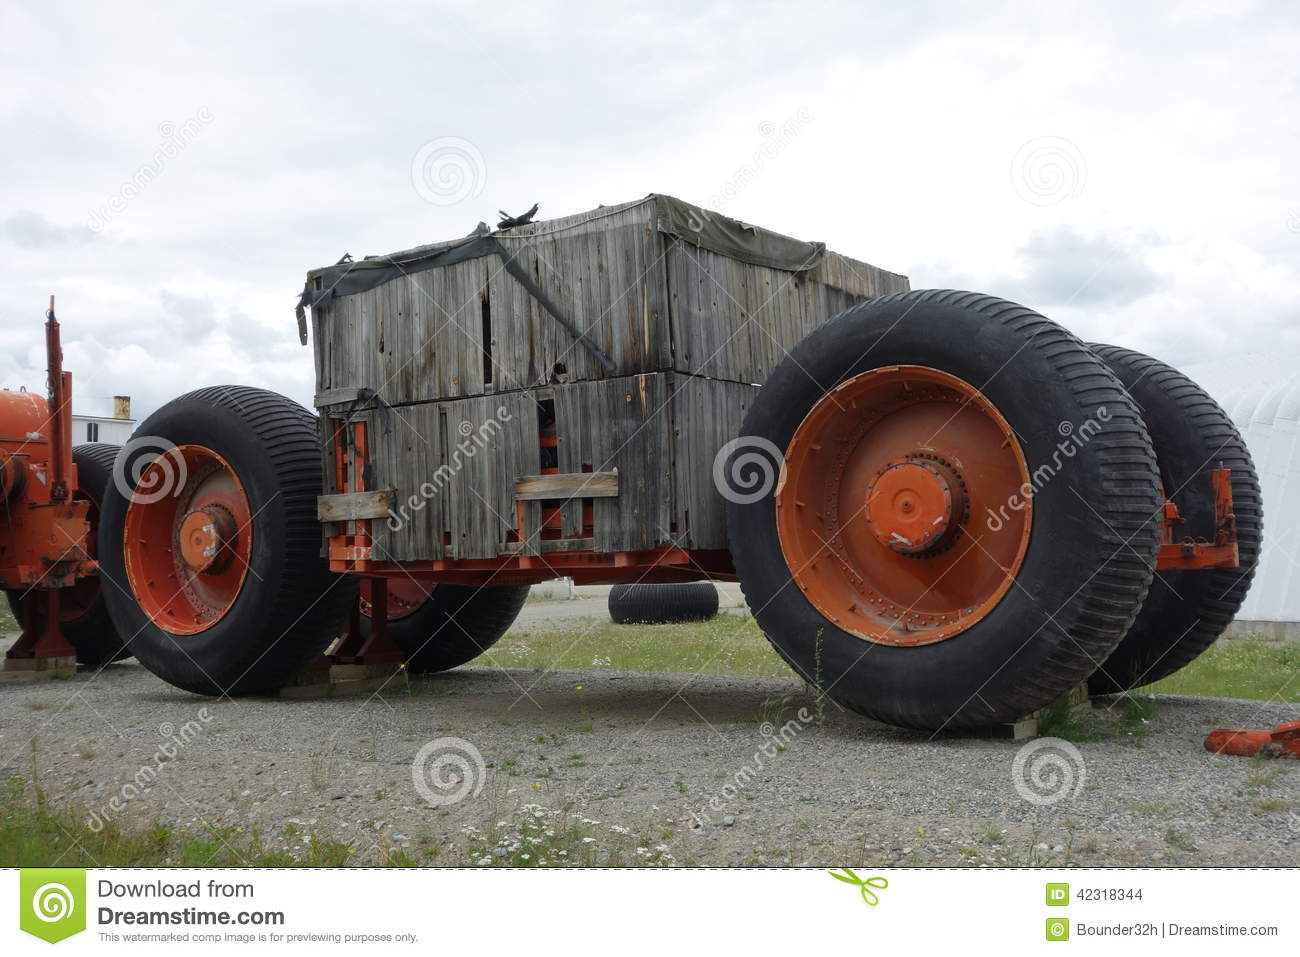 Tundra Off Road >> An Old Off-road Trailer With Tundra Tires. Stock Photo - Image: 42318344